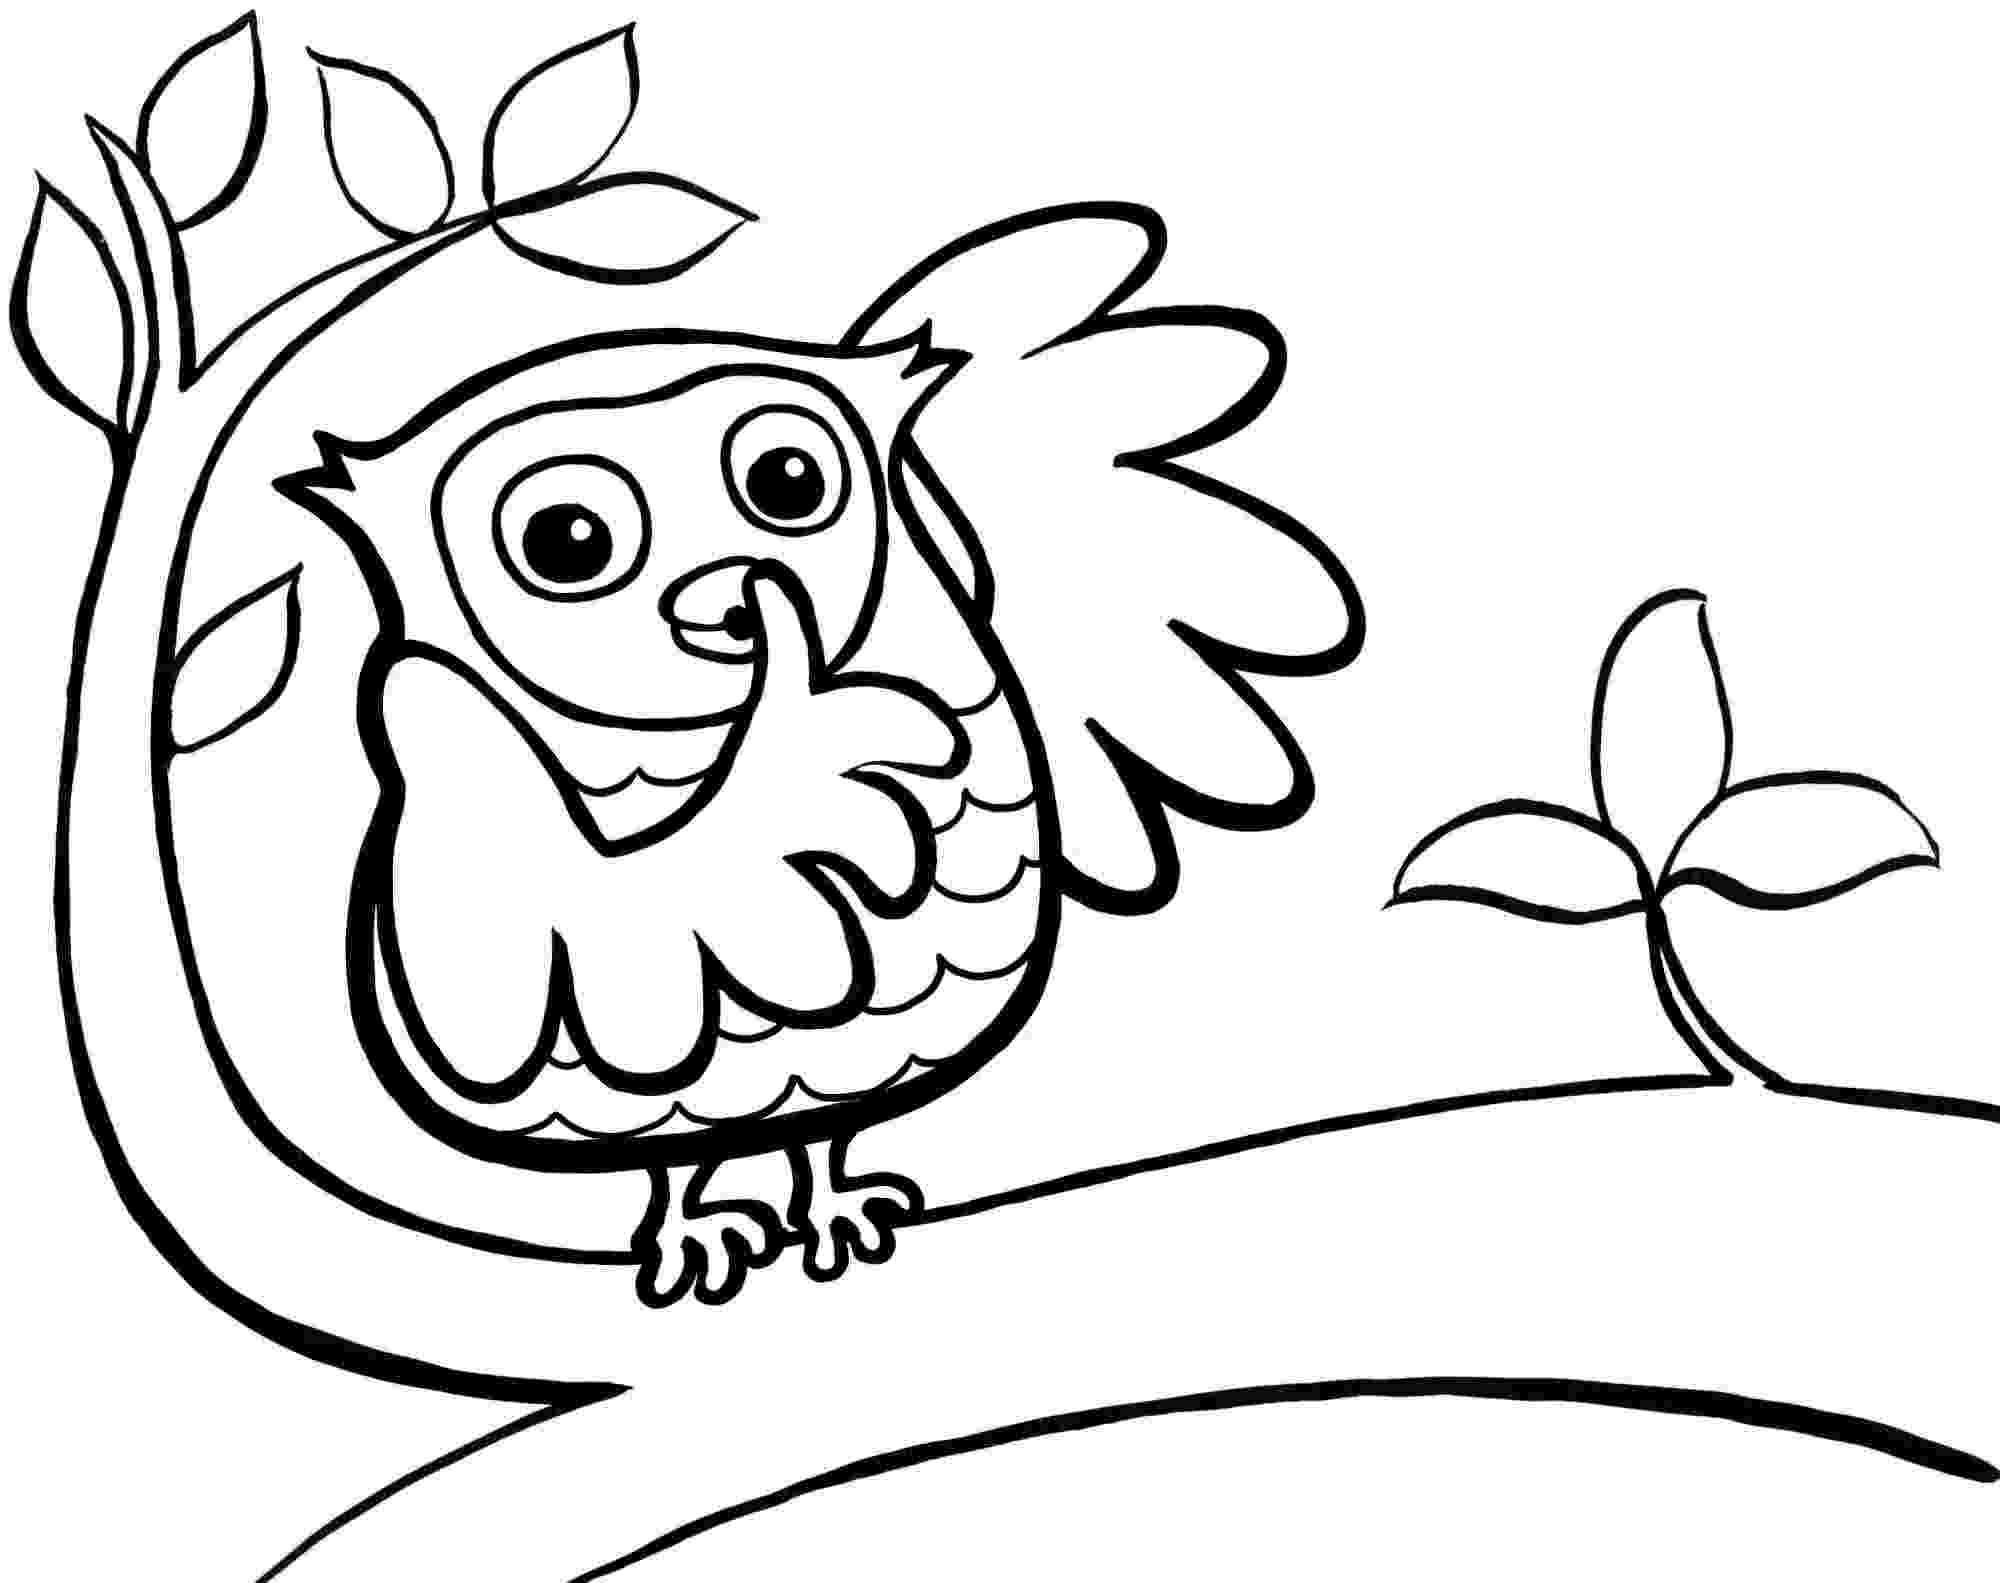 cute coloring pages of owls owl coloring pages for kids printable coloring pages 2 owls pages coloring cute of